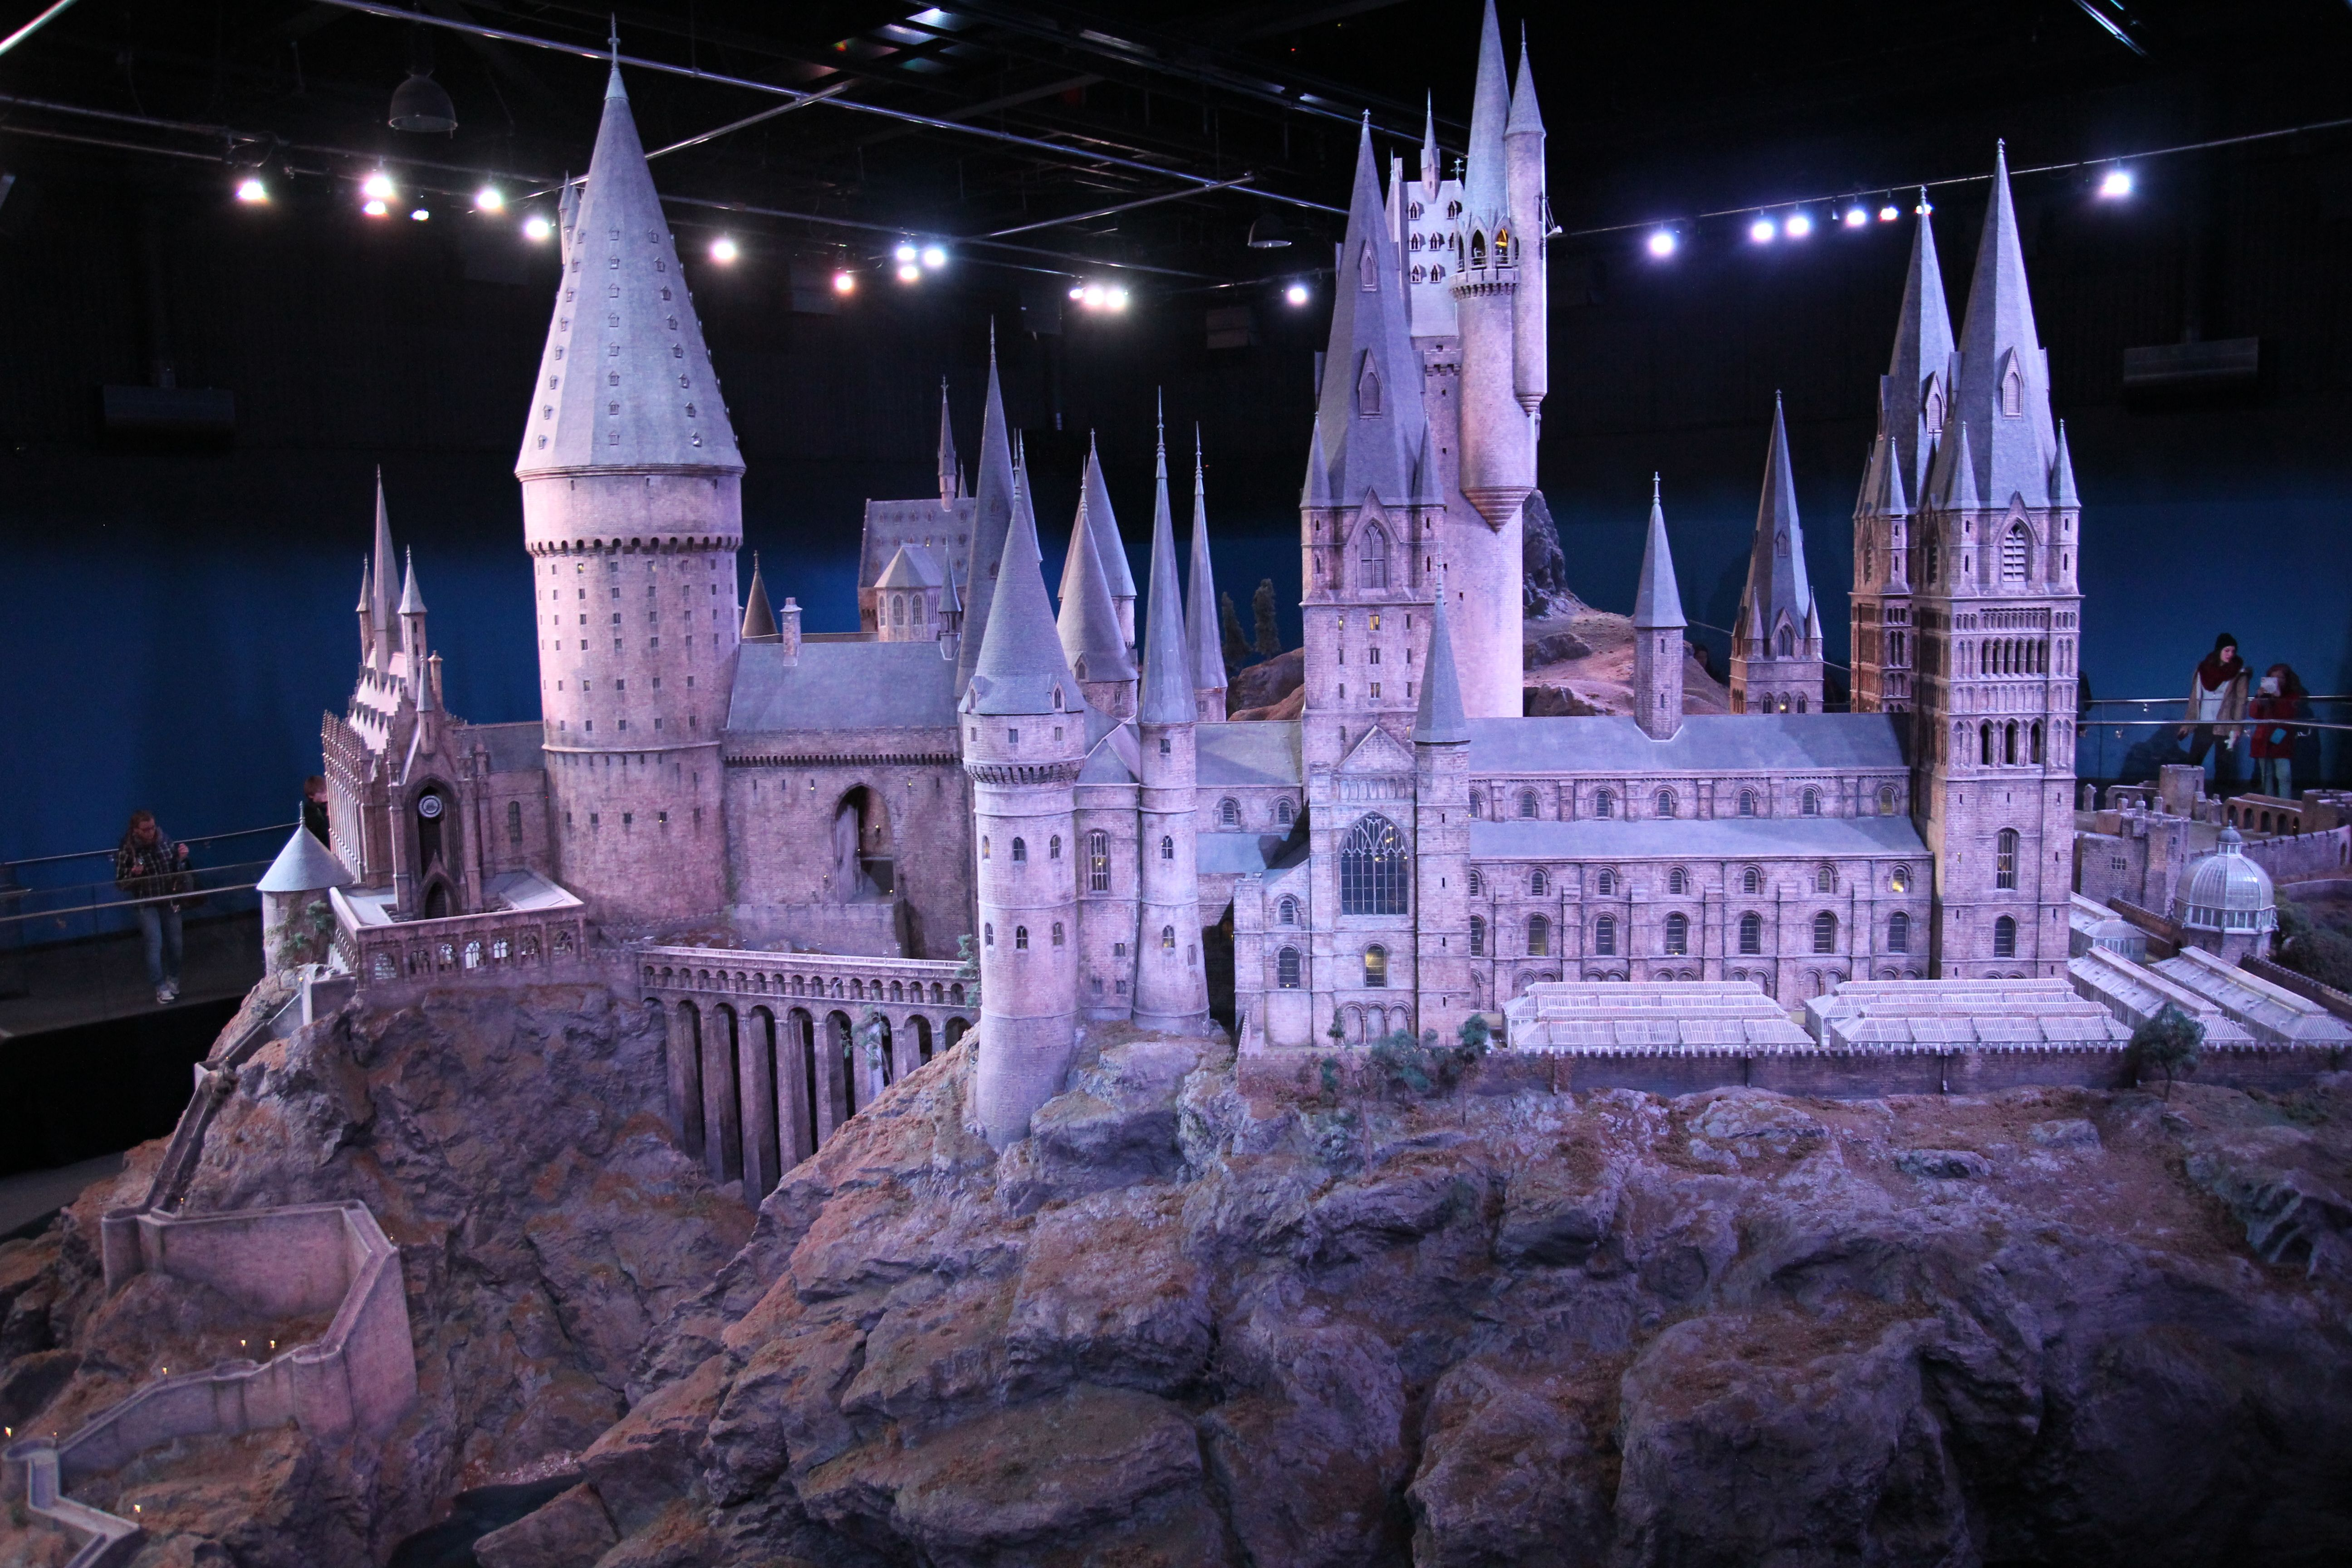 Hogwarts Castle Blueprints Harry Potter Secrets Revealed I Just Took The Amazing Studio Tour Harry Potter Studio Tour Studio Tour Harry Potter Tour